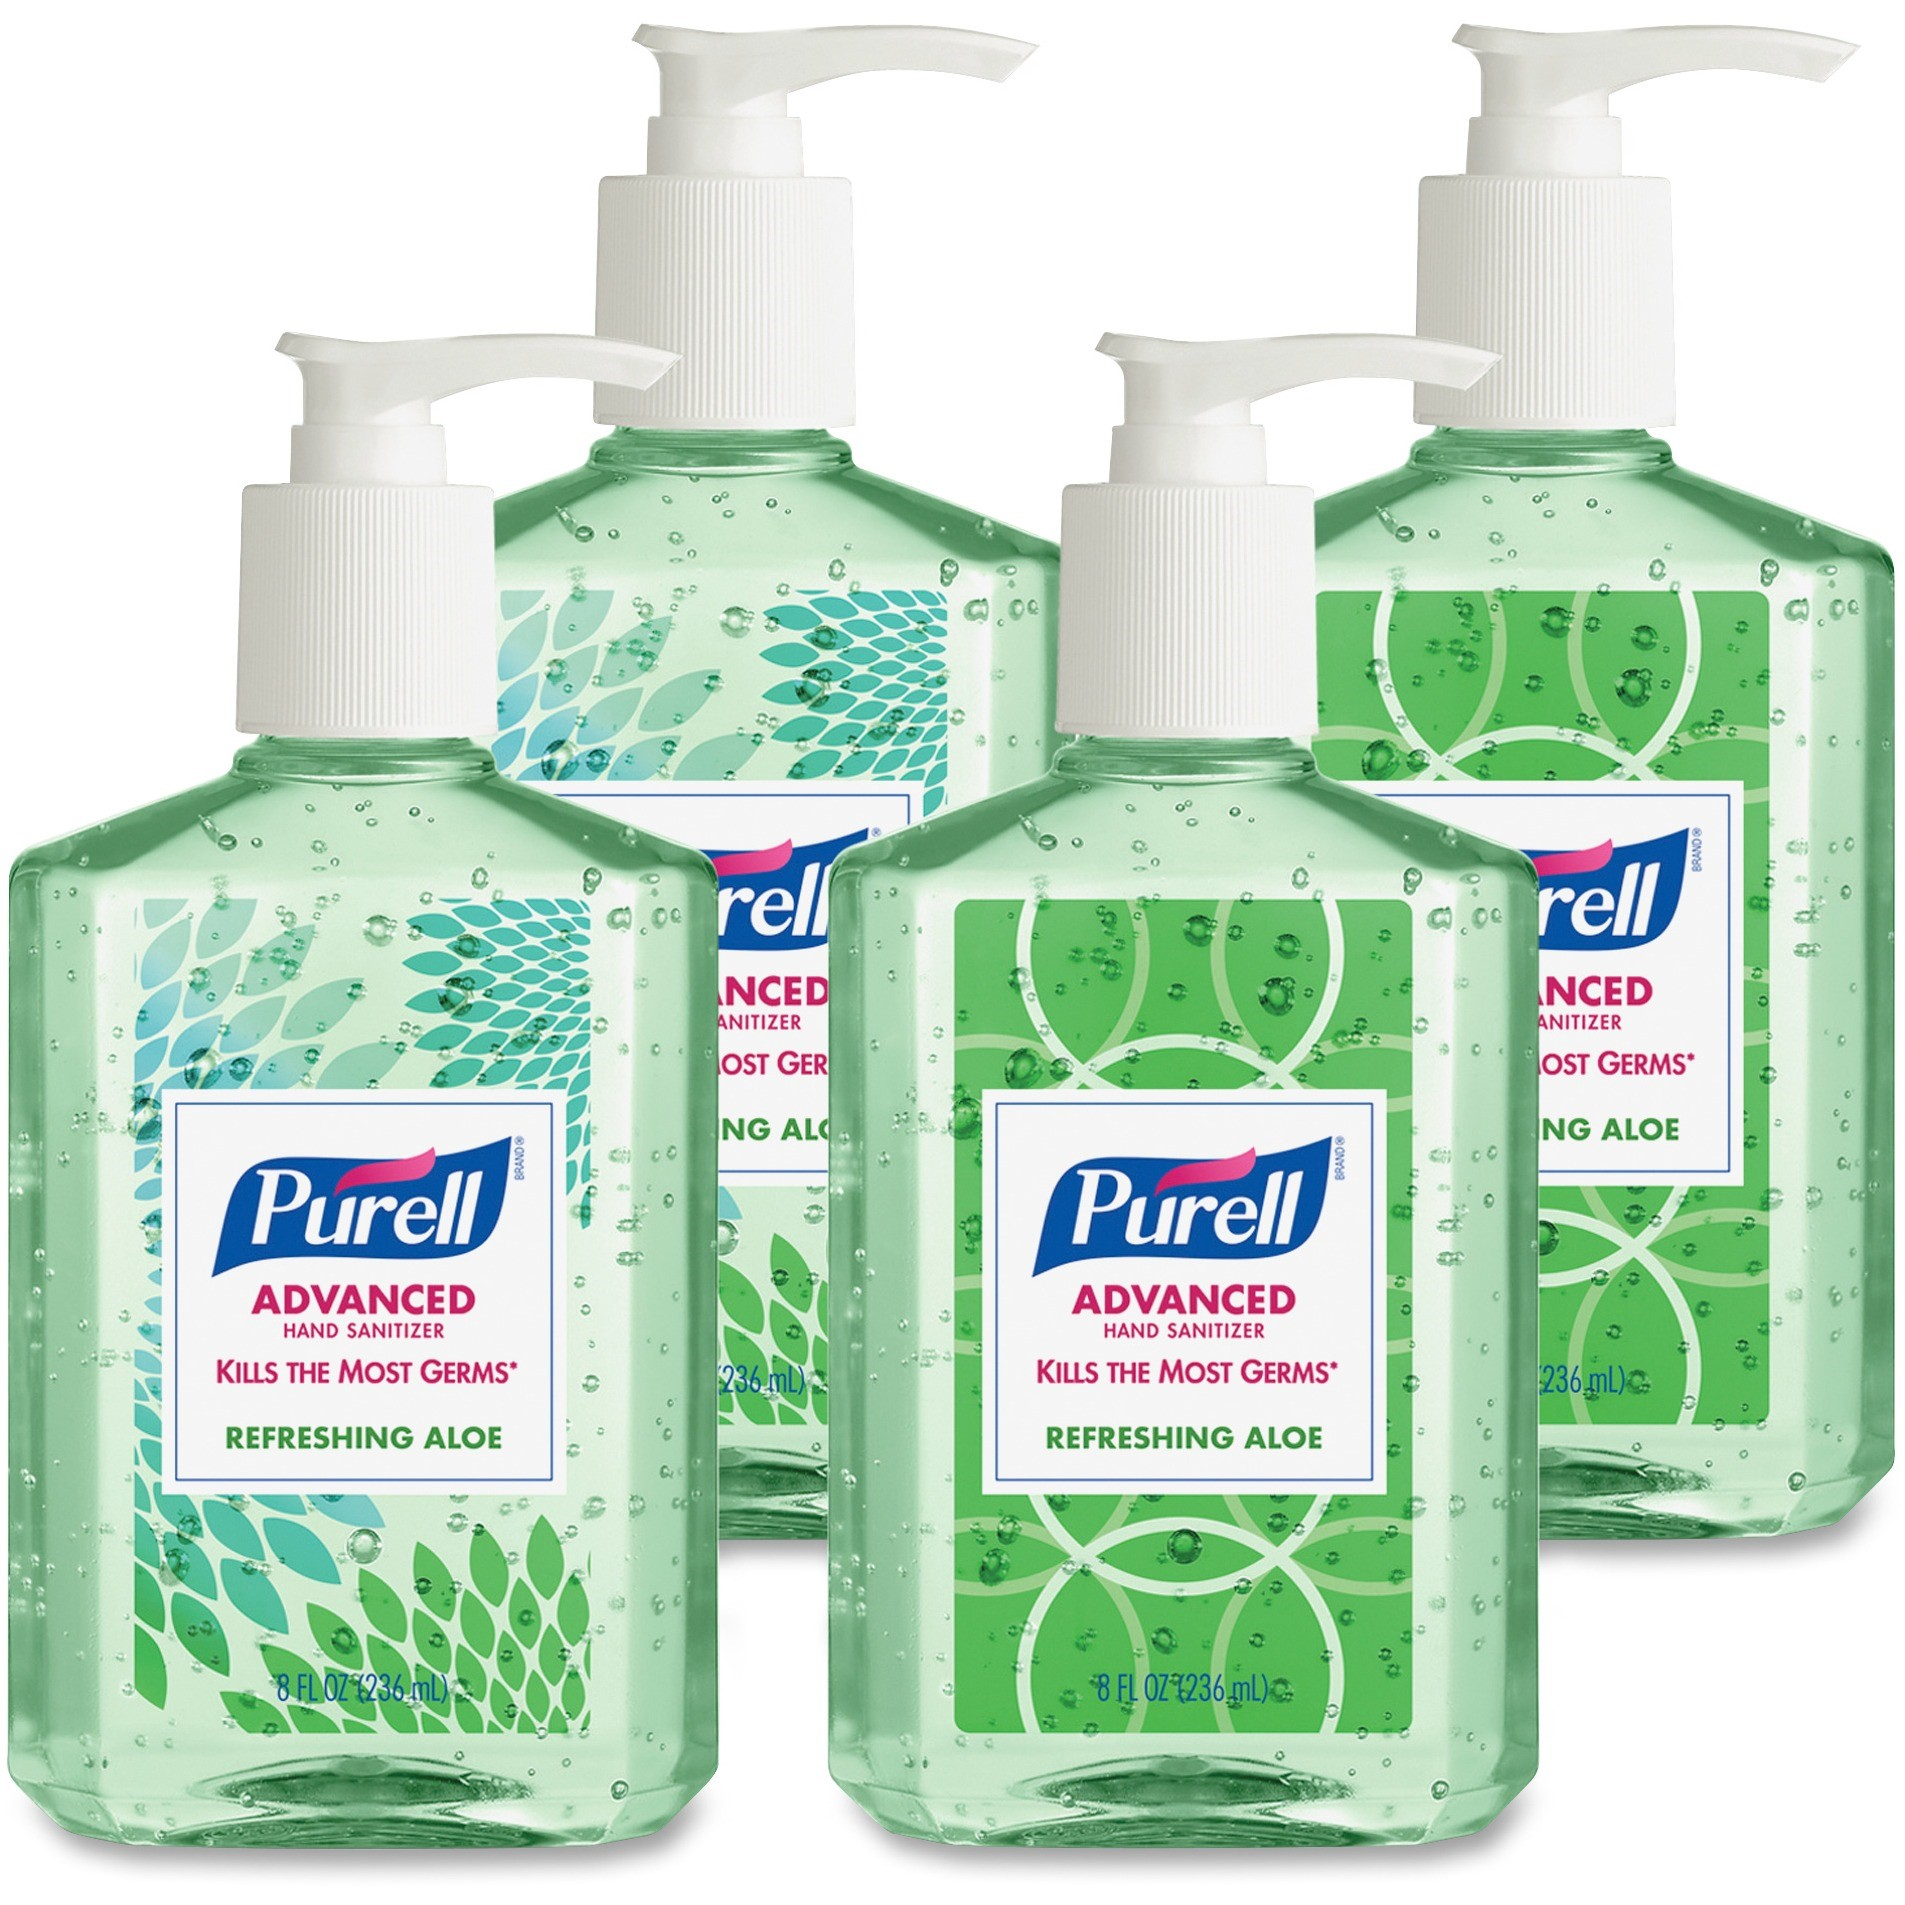 (Pack of 4) PURELL Refreshing Aloe Hand Sanitizer, 8 Oz by PURELL